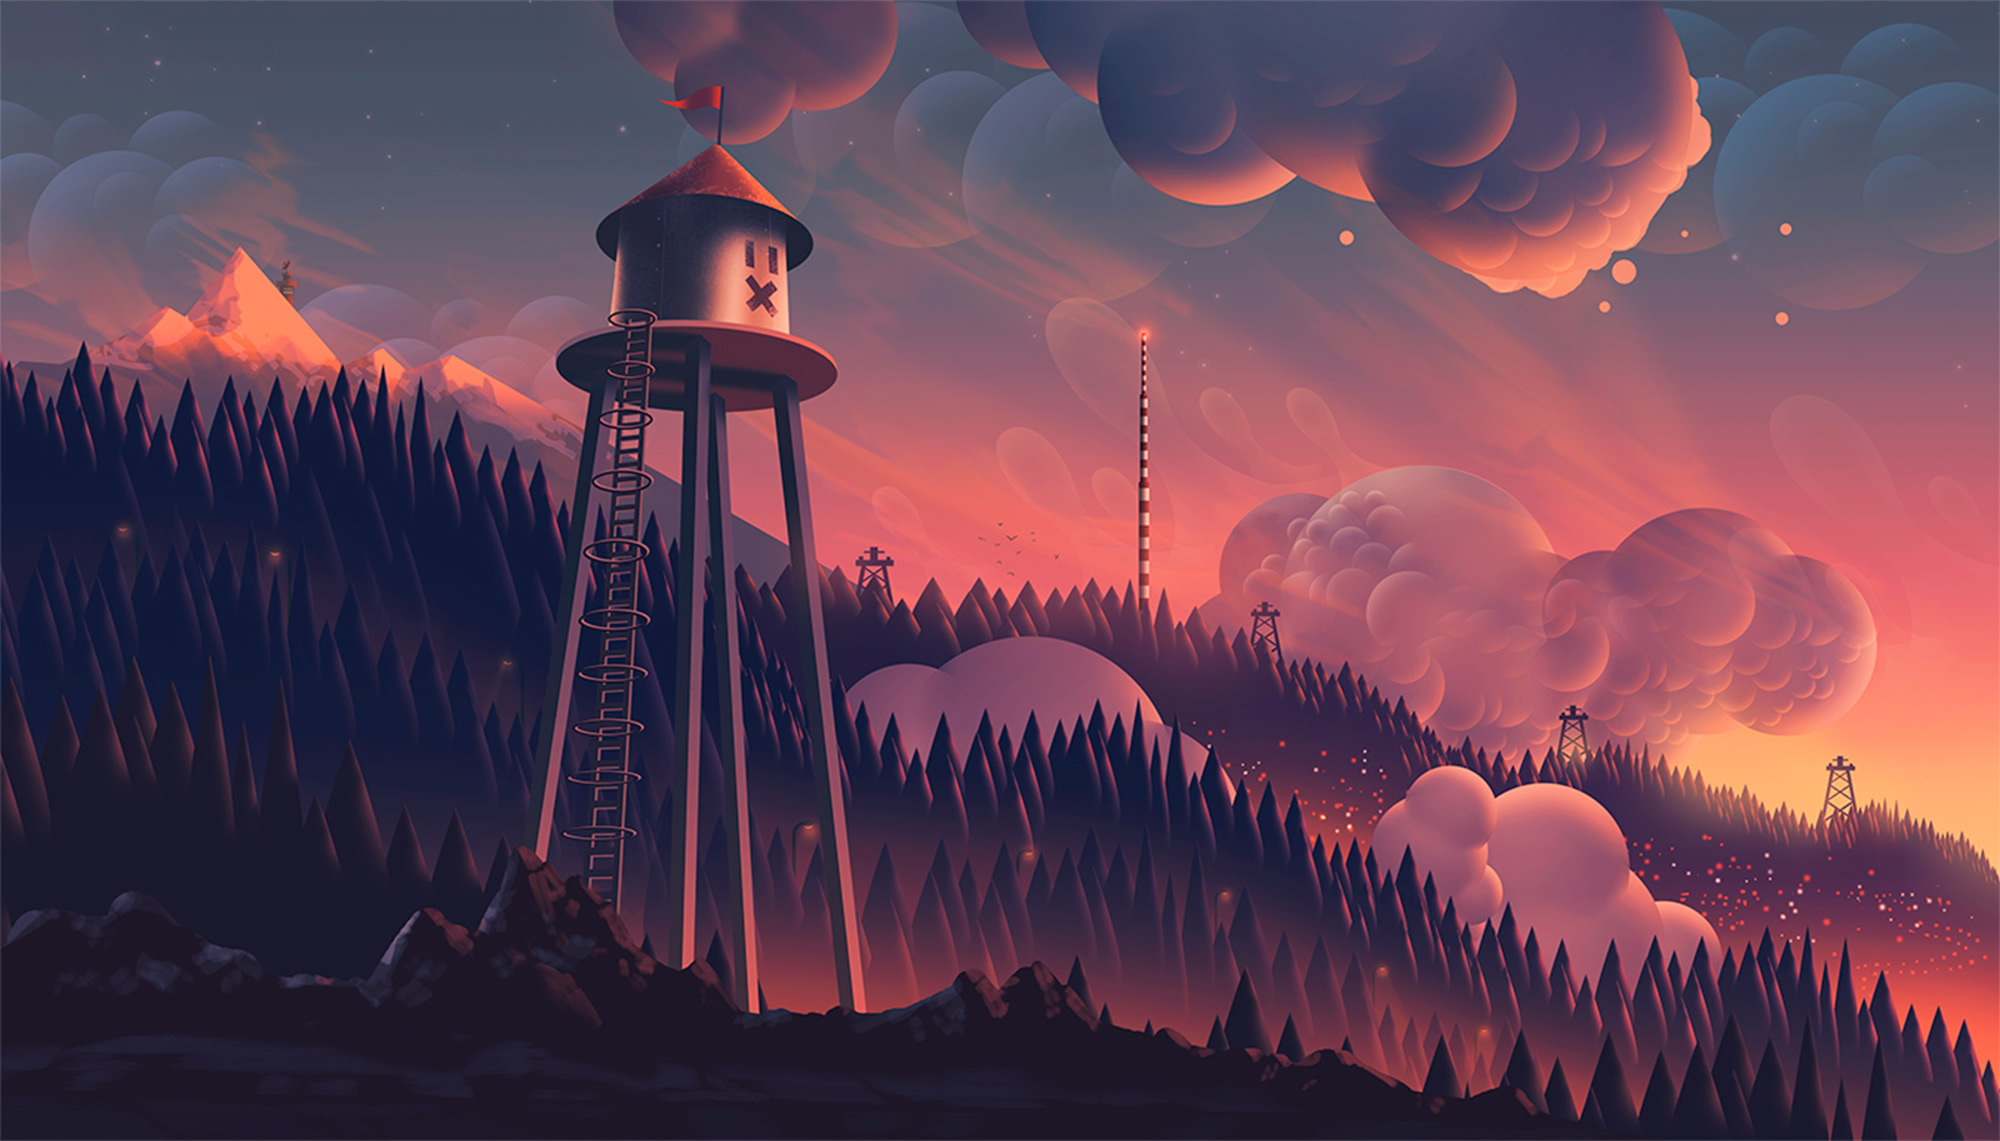 Enter the Magical World of Illustrator Aaron Campbell